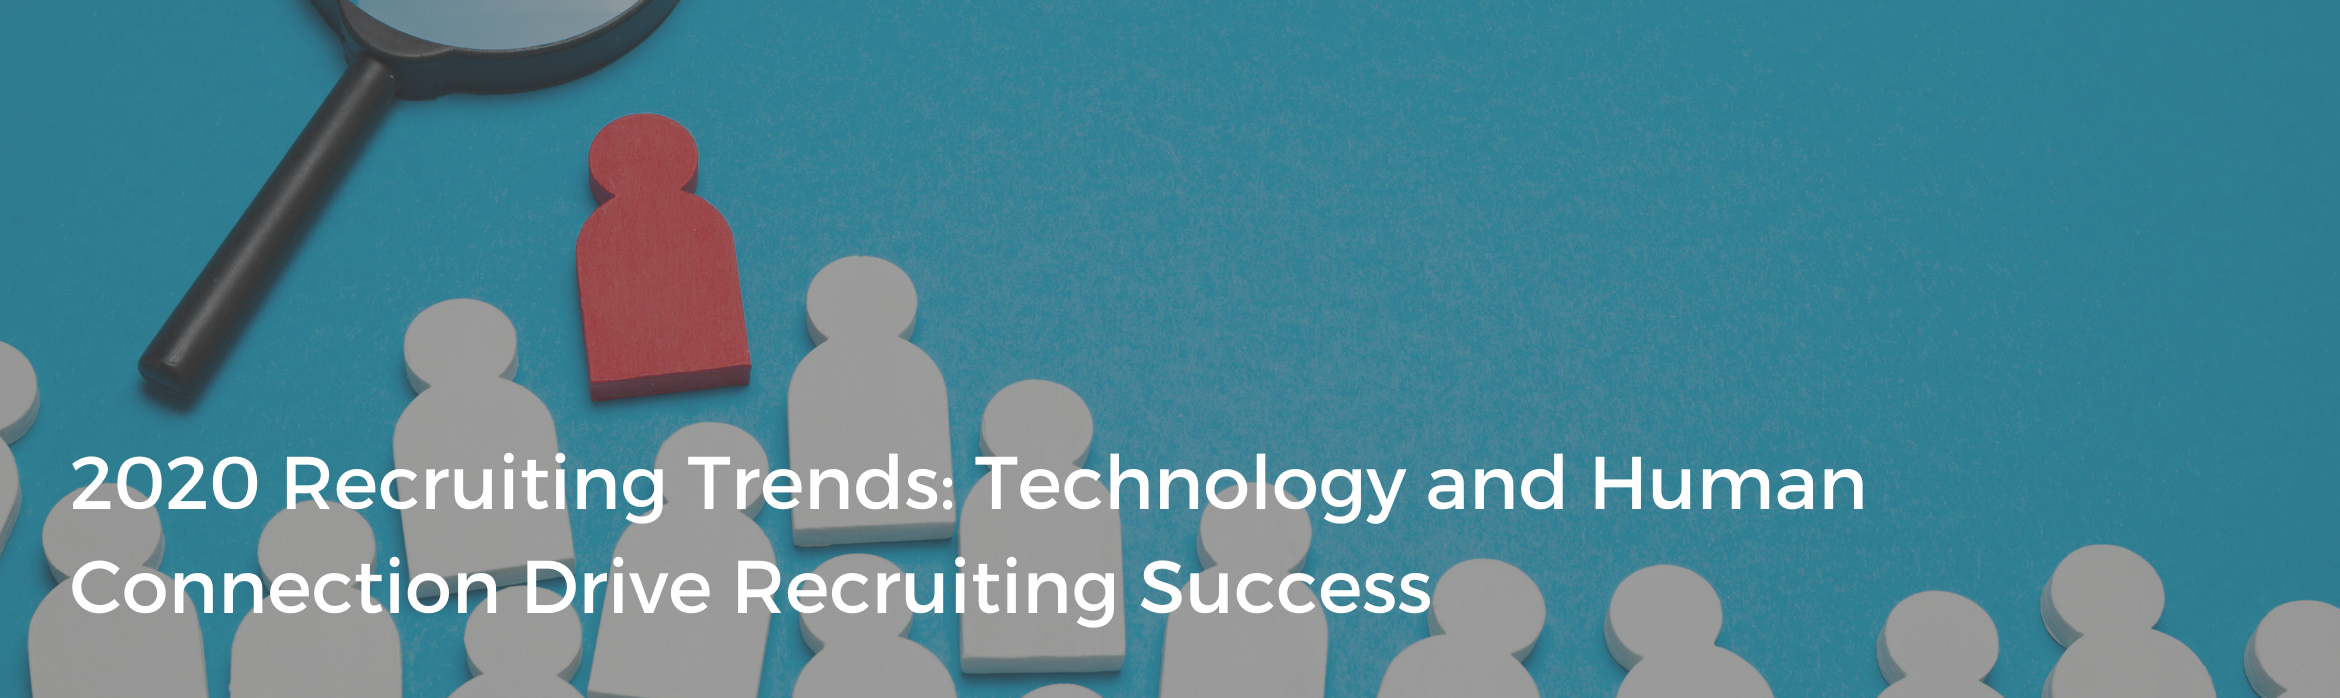 2020 Recruiting Trends: Technology and Human Connection Drive Recruiting Success